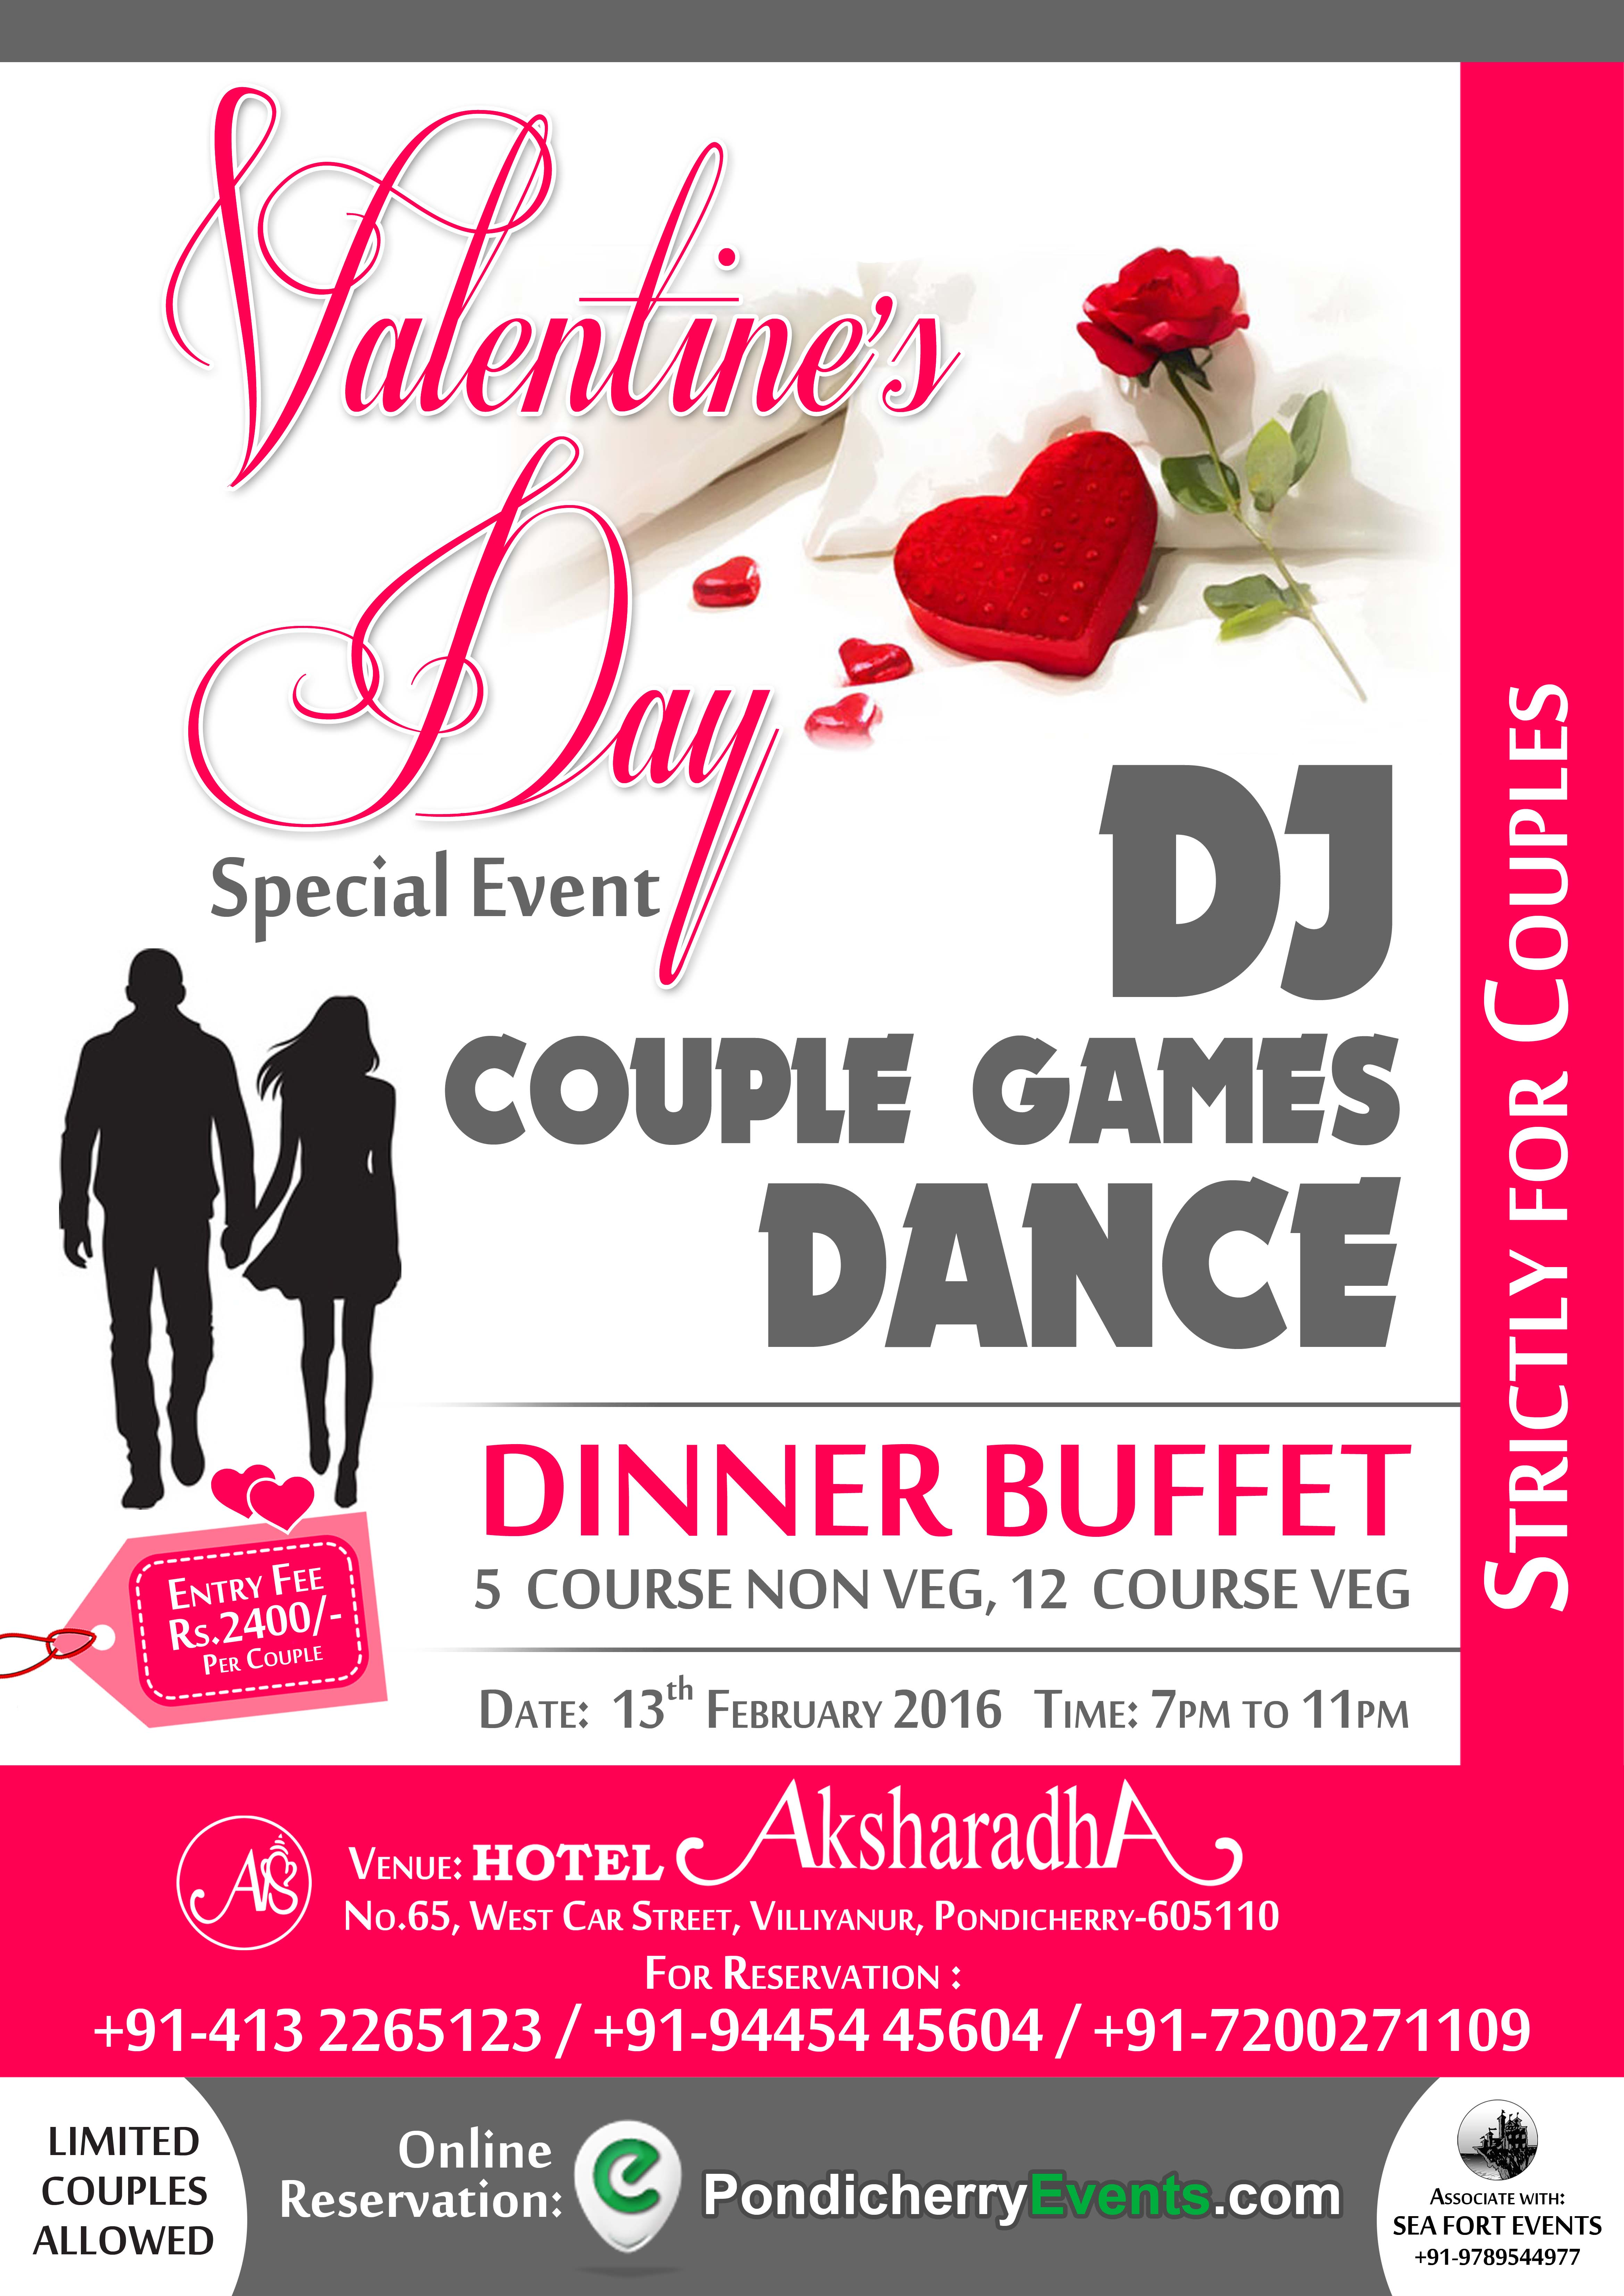 Valentines day special event